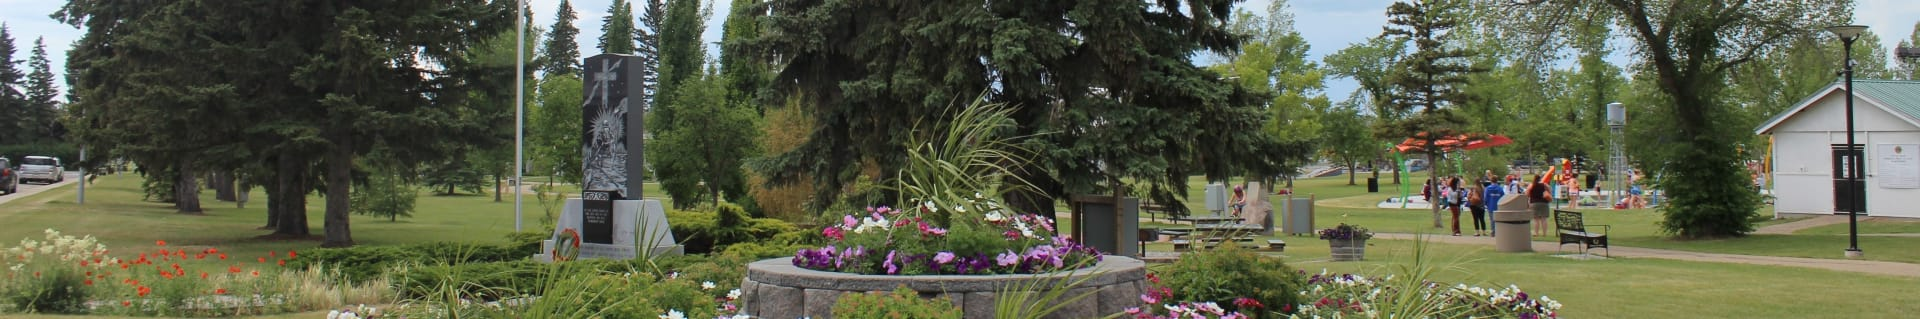 Landscape shot of flowers in Centennial Park in the Town of Olds